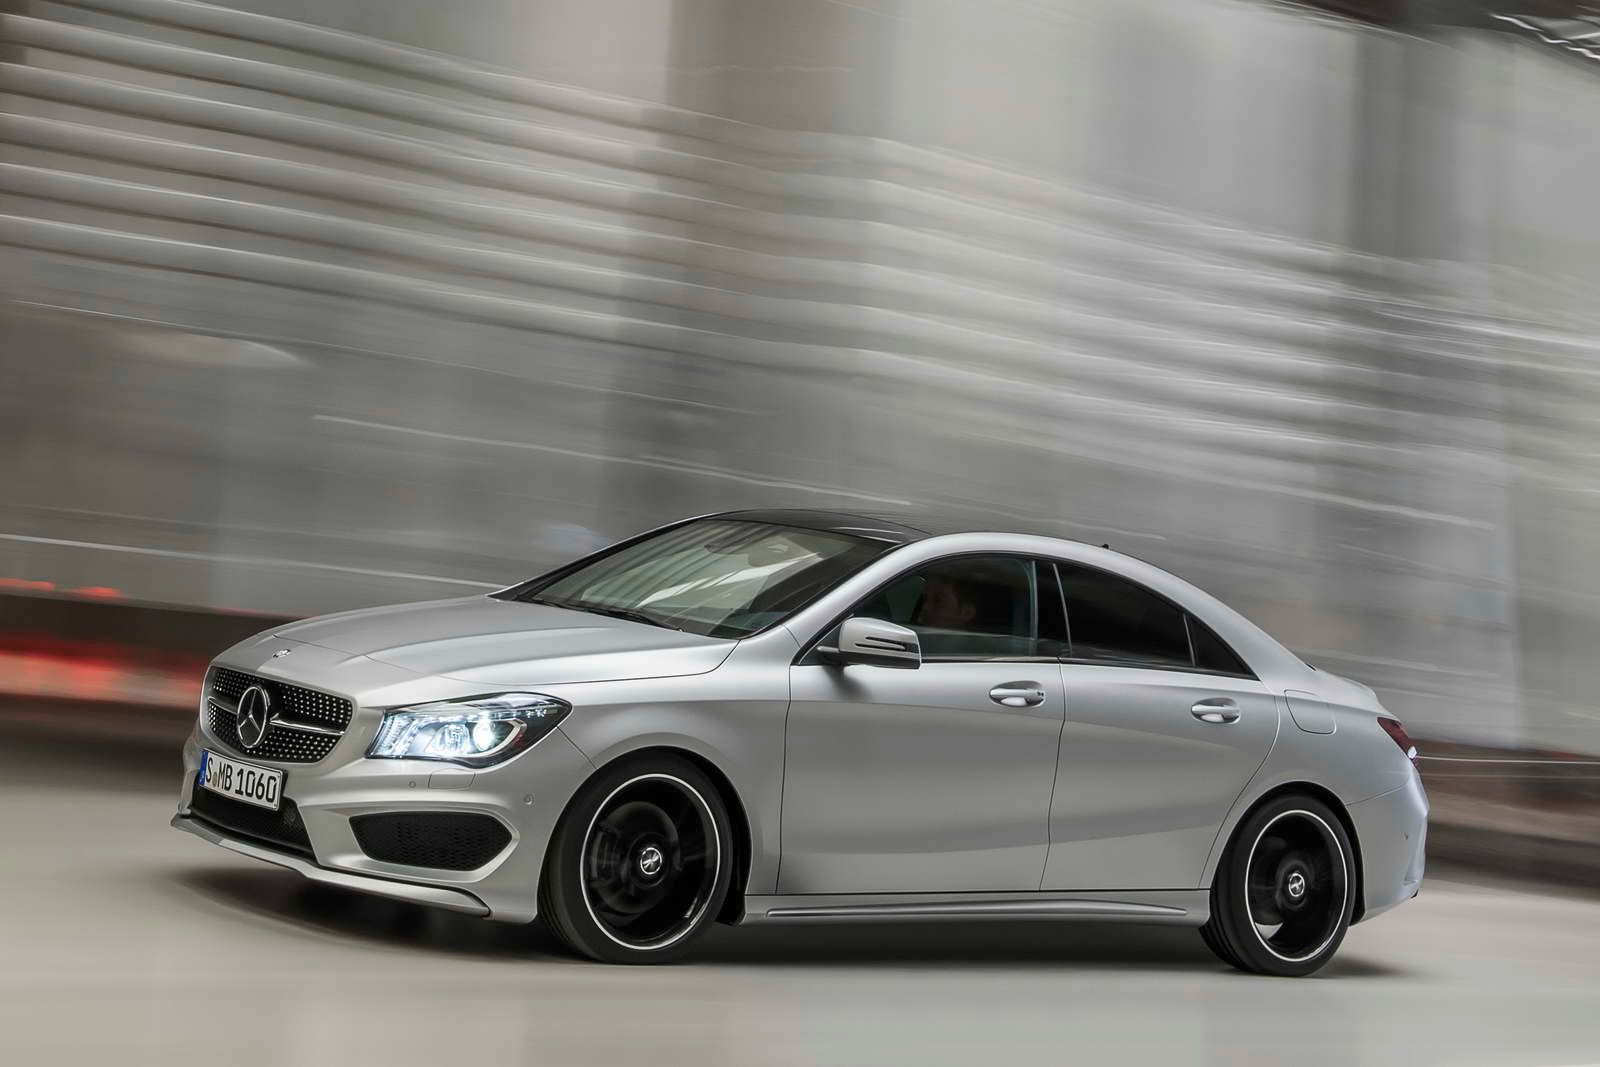 The Budget Buffett: Used Luxury Cars That Anyone Can Afford